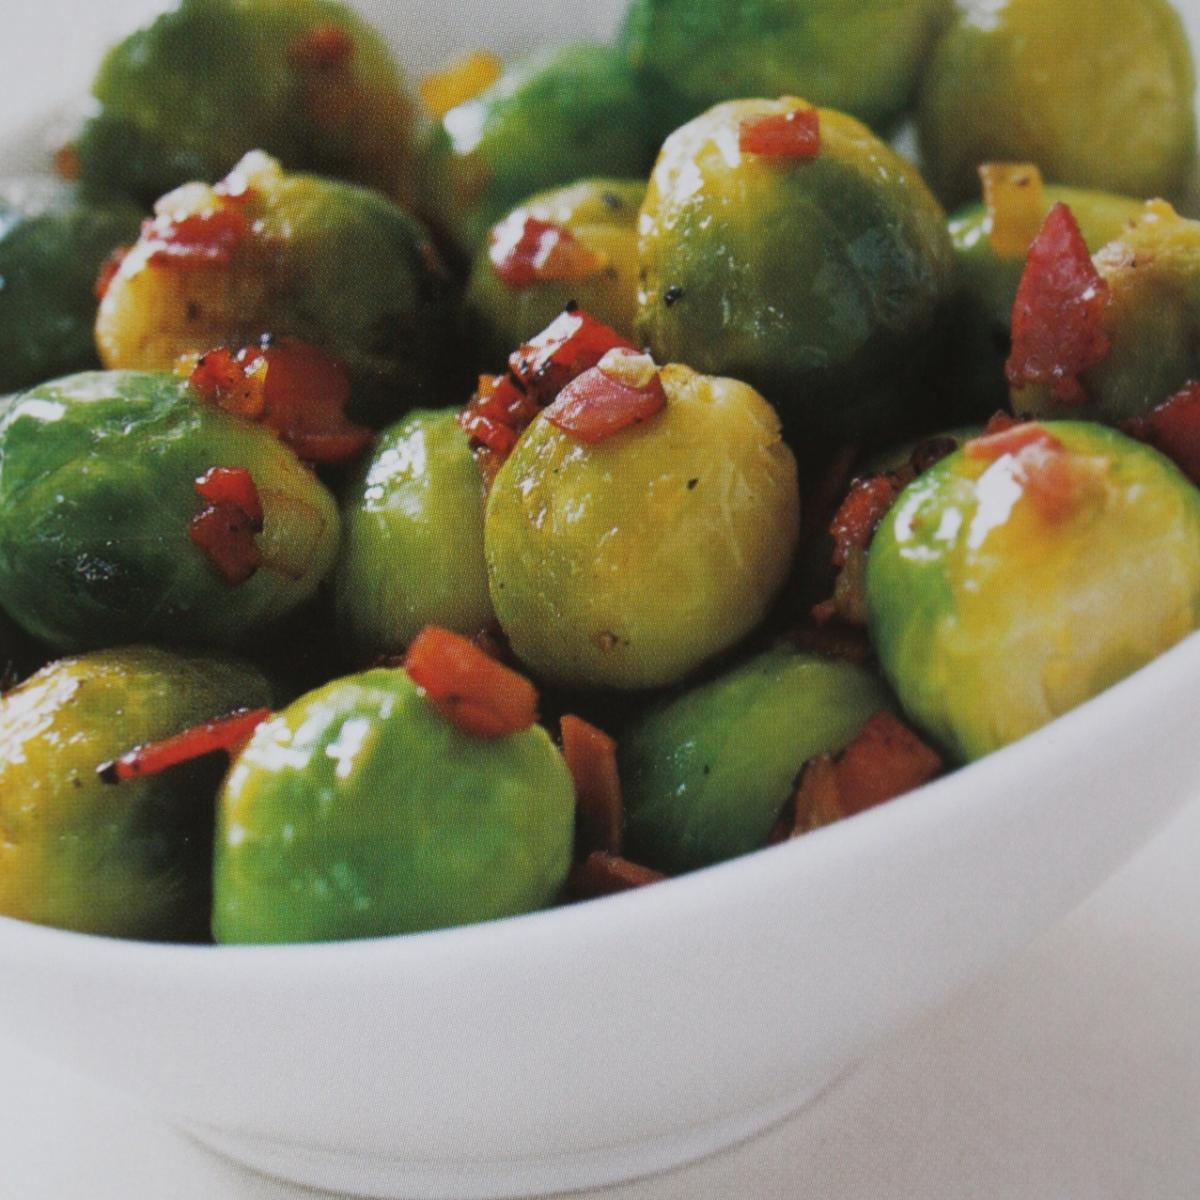 A picture of Delia's Caramelised Button Sprouts and Shallots with Sherry Vinegar recipe